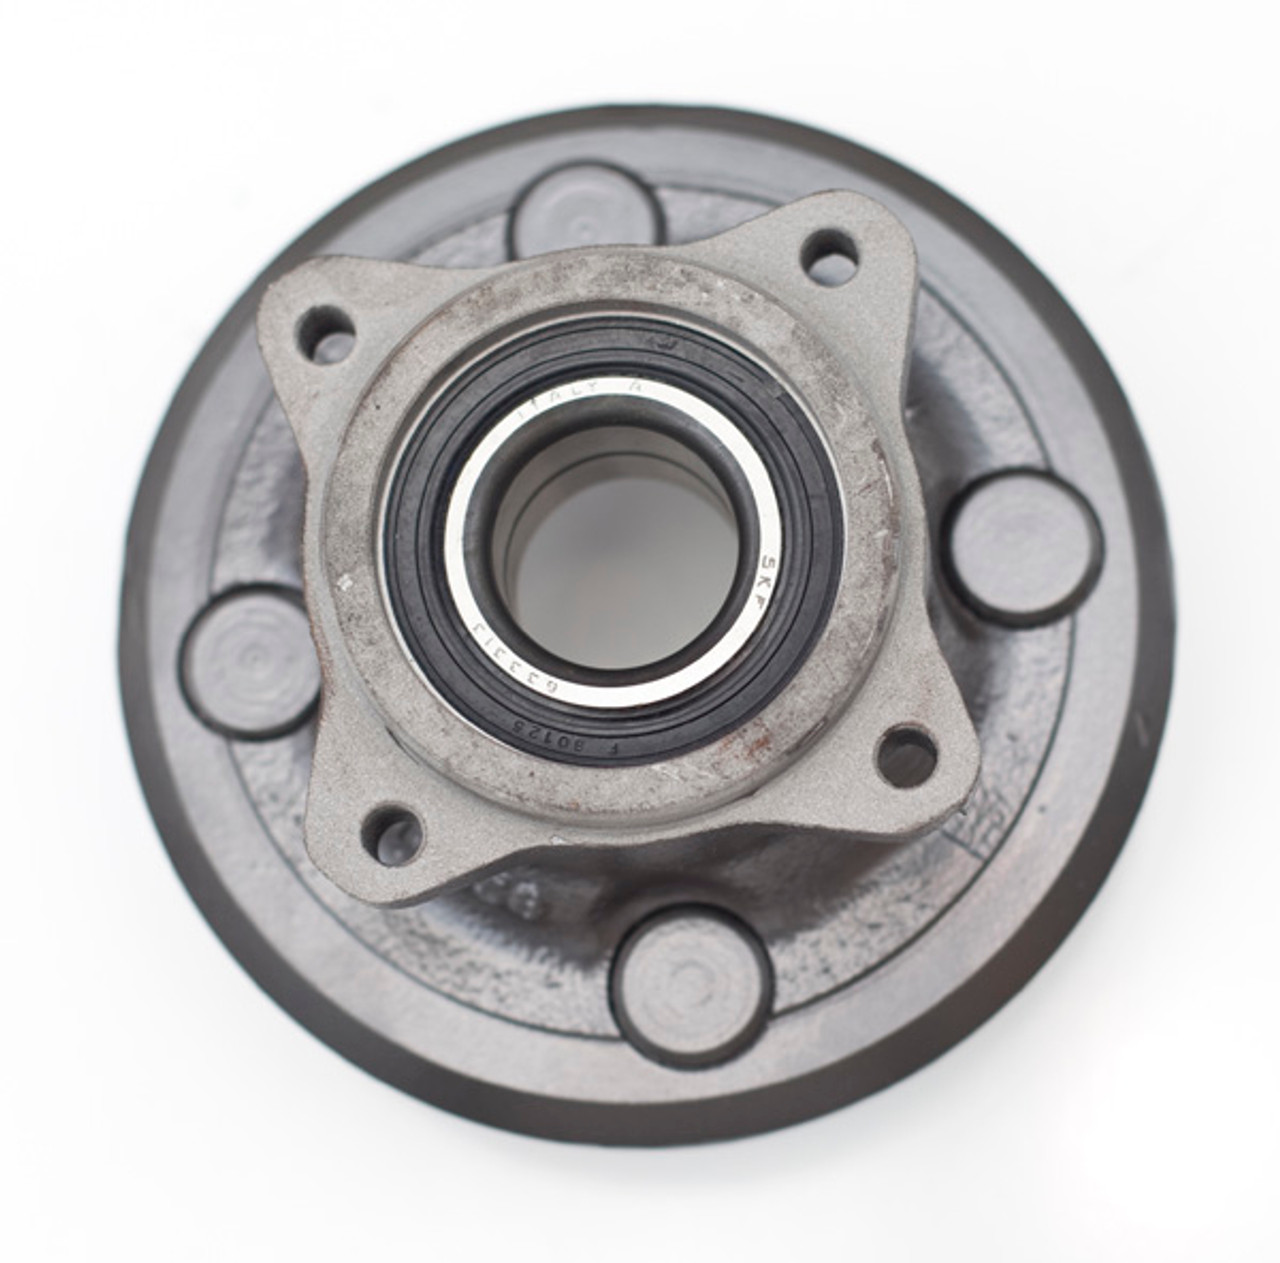 51. FRONT HUB ASSY REFURBISHED WITH BEARING